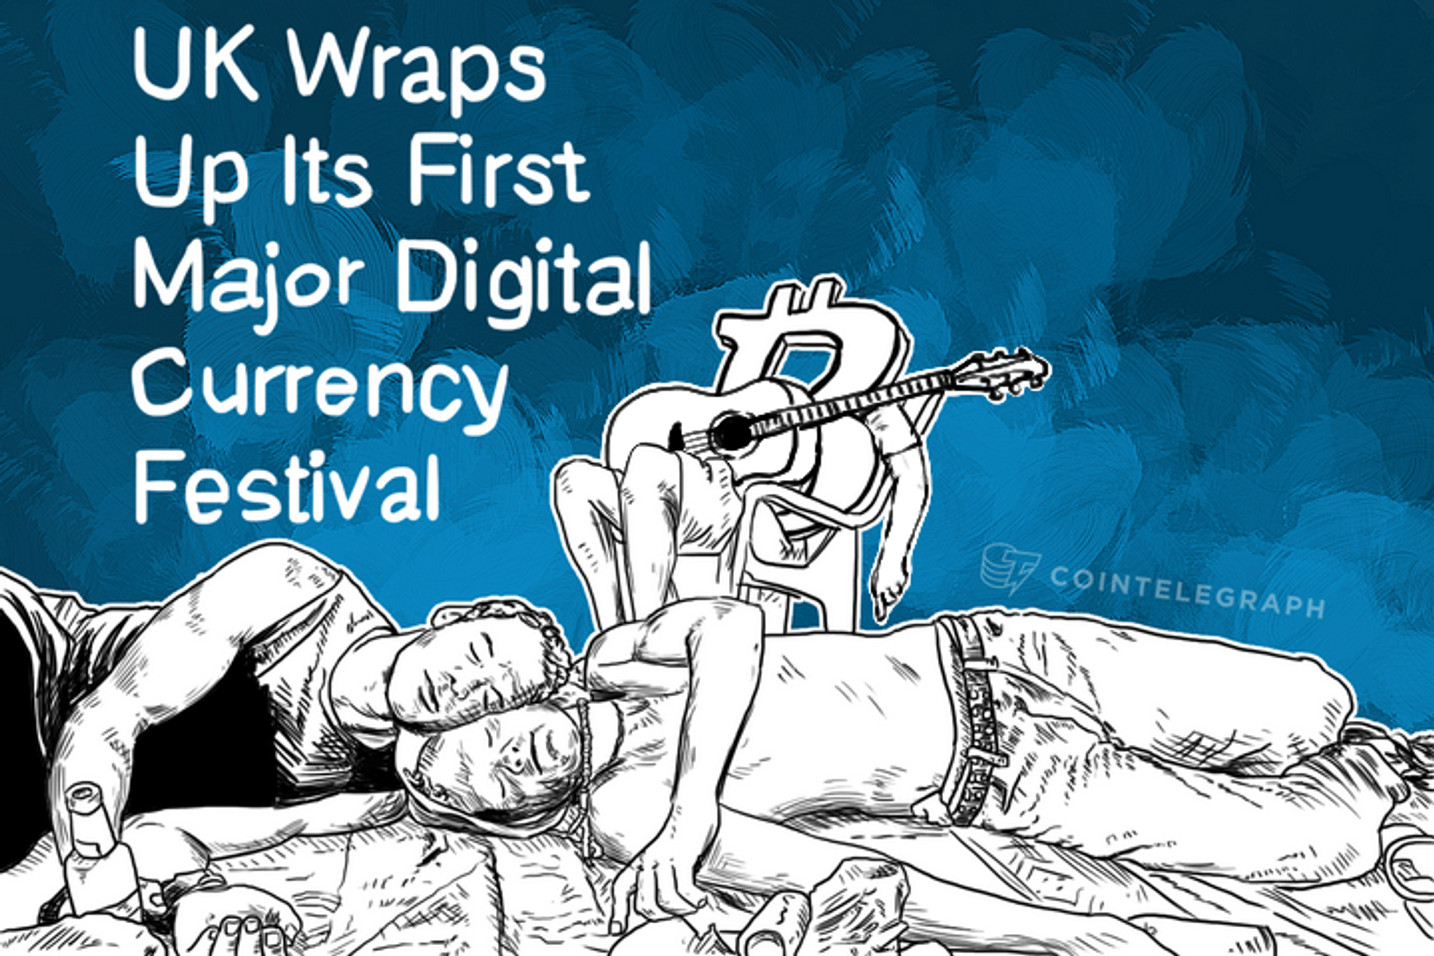 UK Wraps Up Its First Major Digital Currency Festival